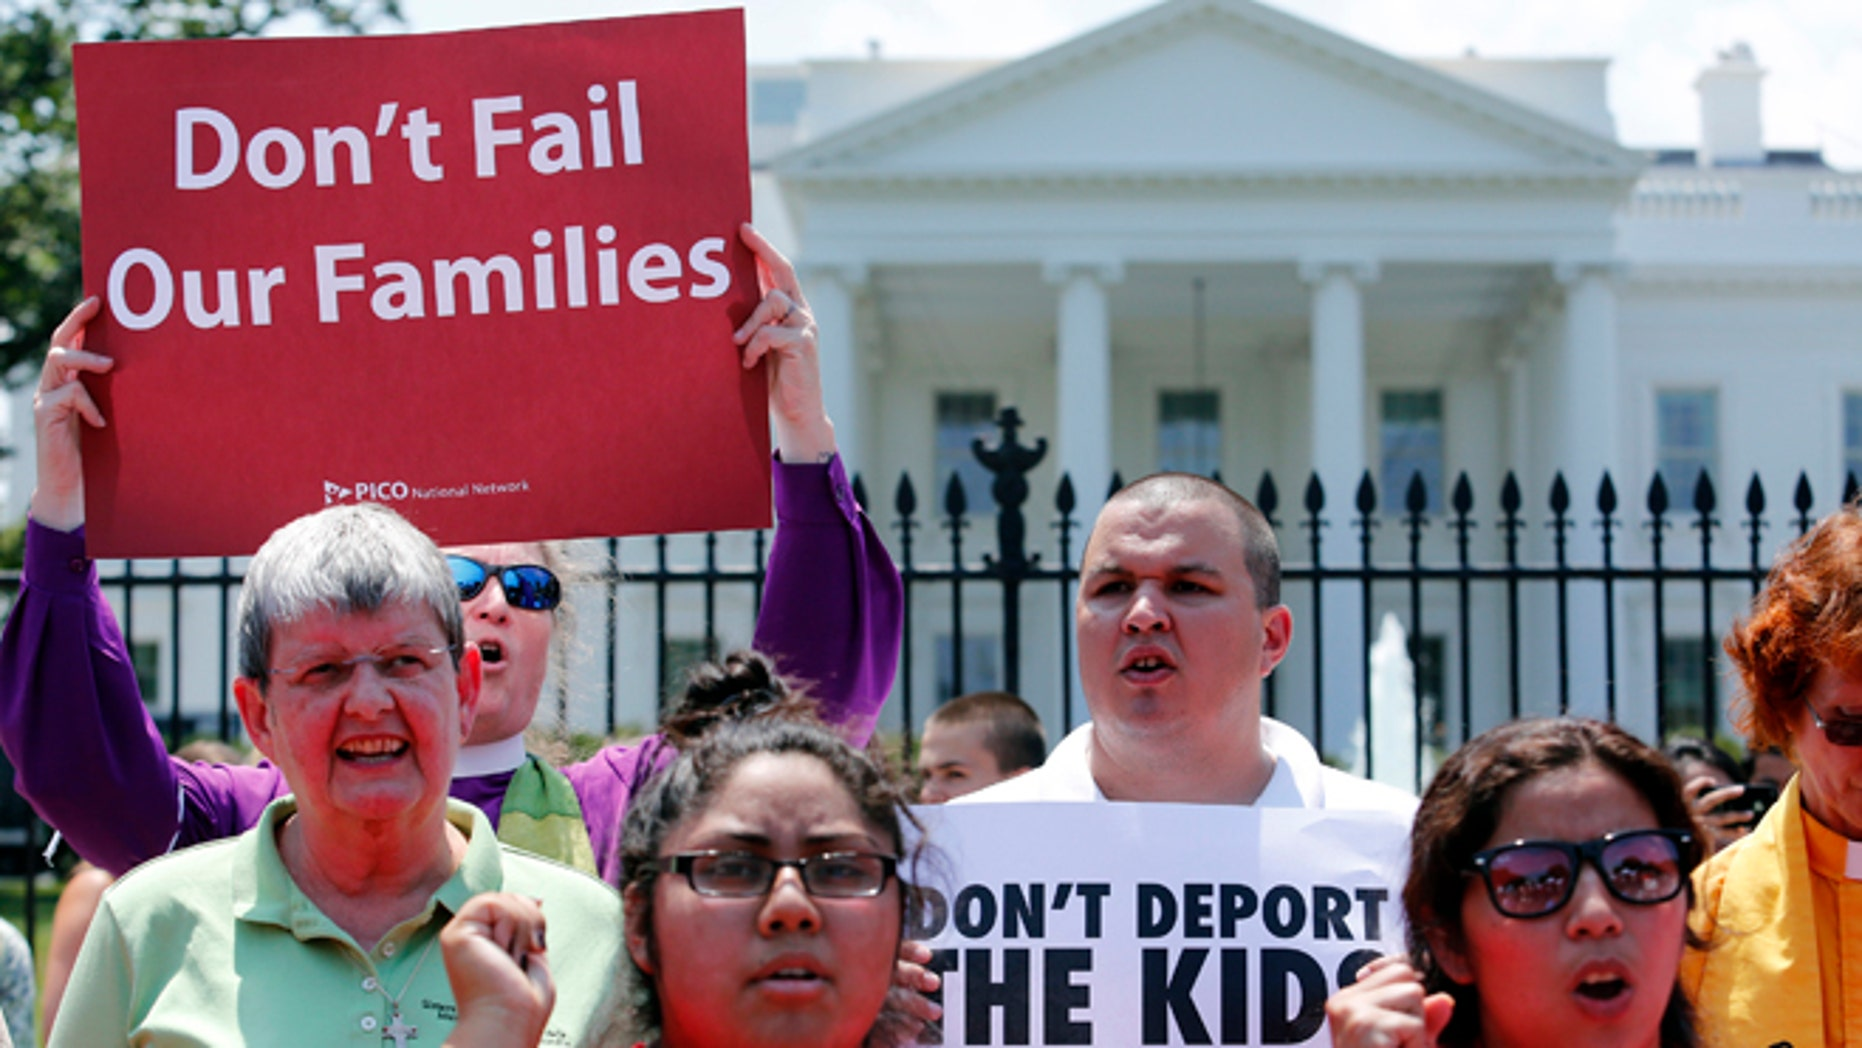 FILE: July 31, 2014: Church groups protest against President Obama's immigration policies outside the White House, Washington, D.C.